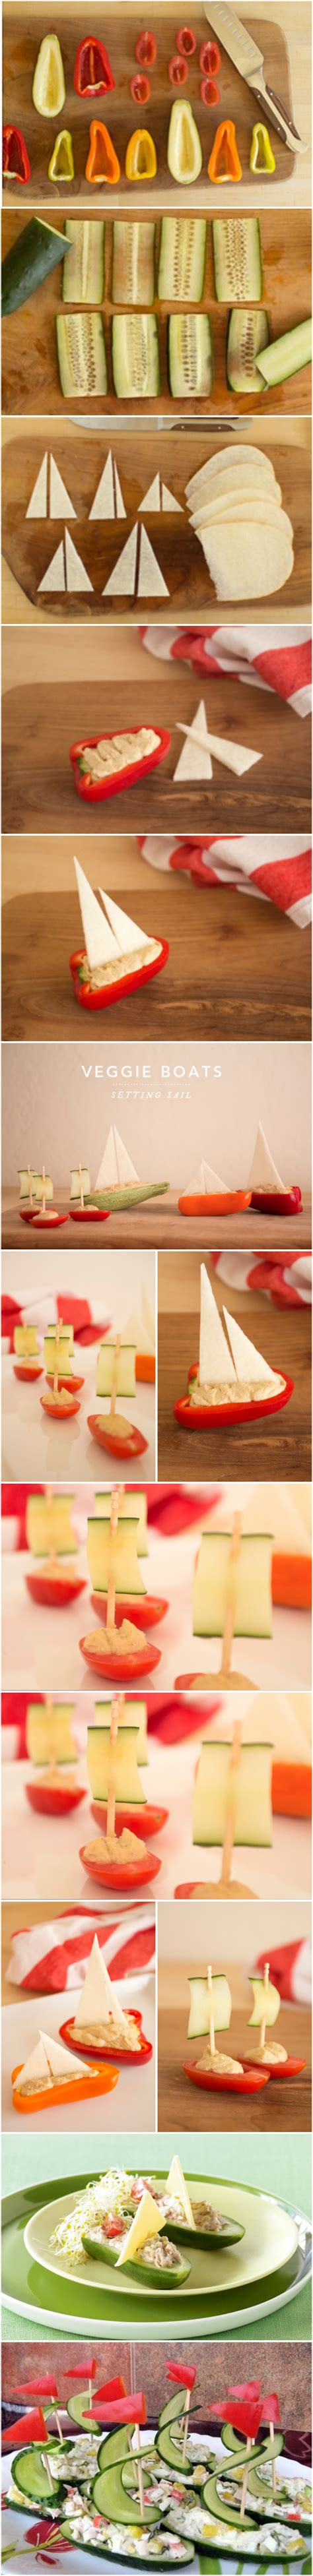 salad decoration at home diy amazing salad decoration vegetables boat